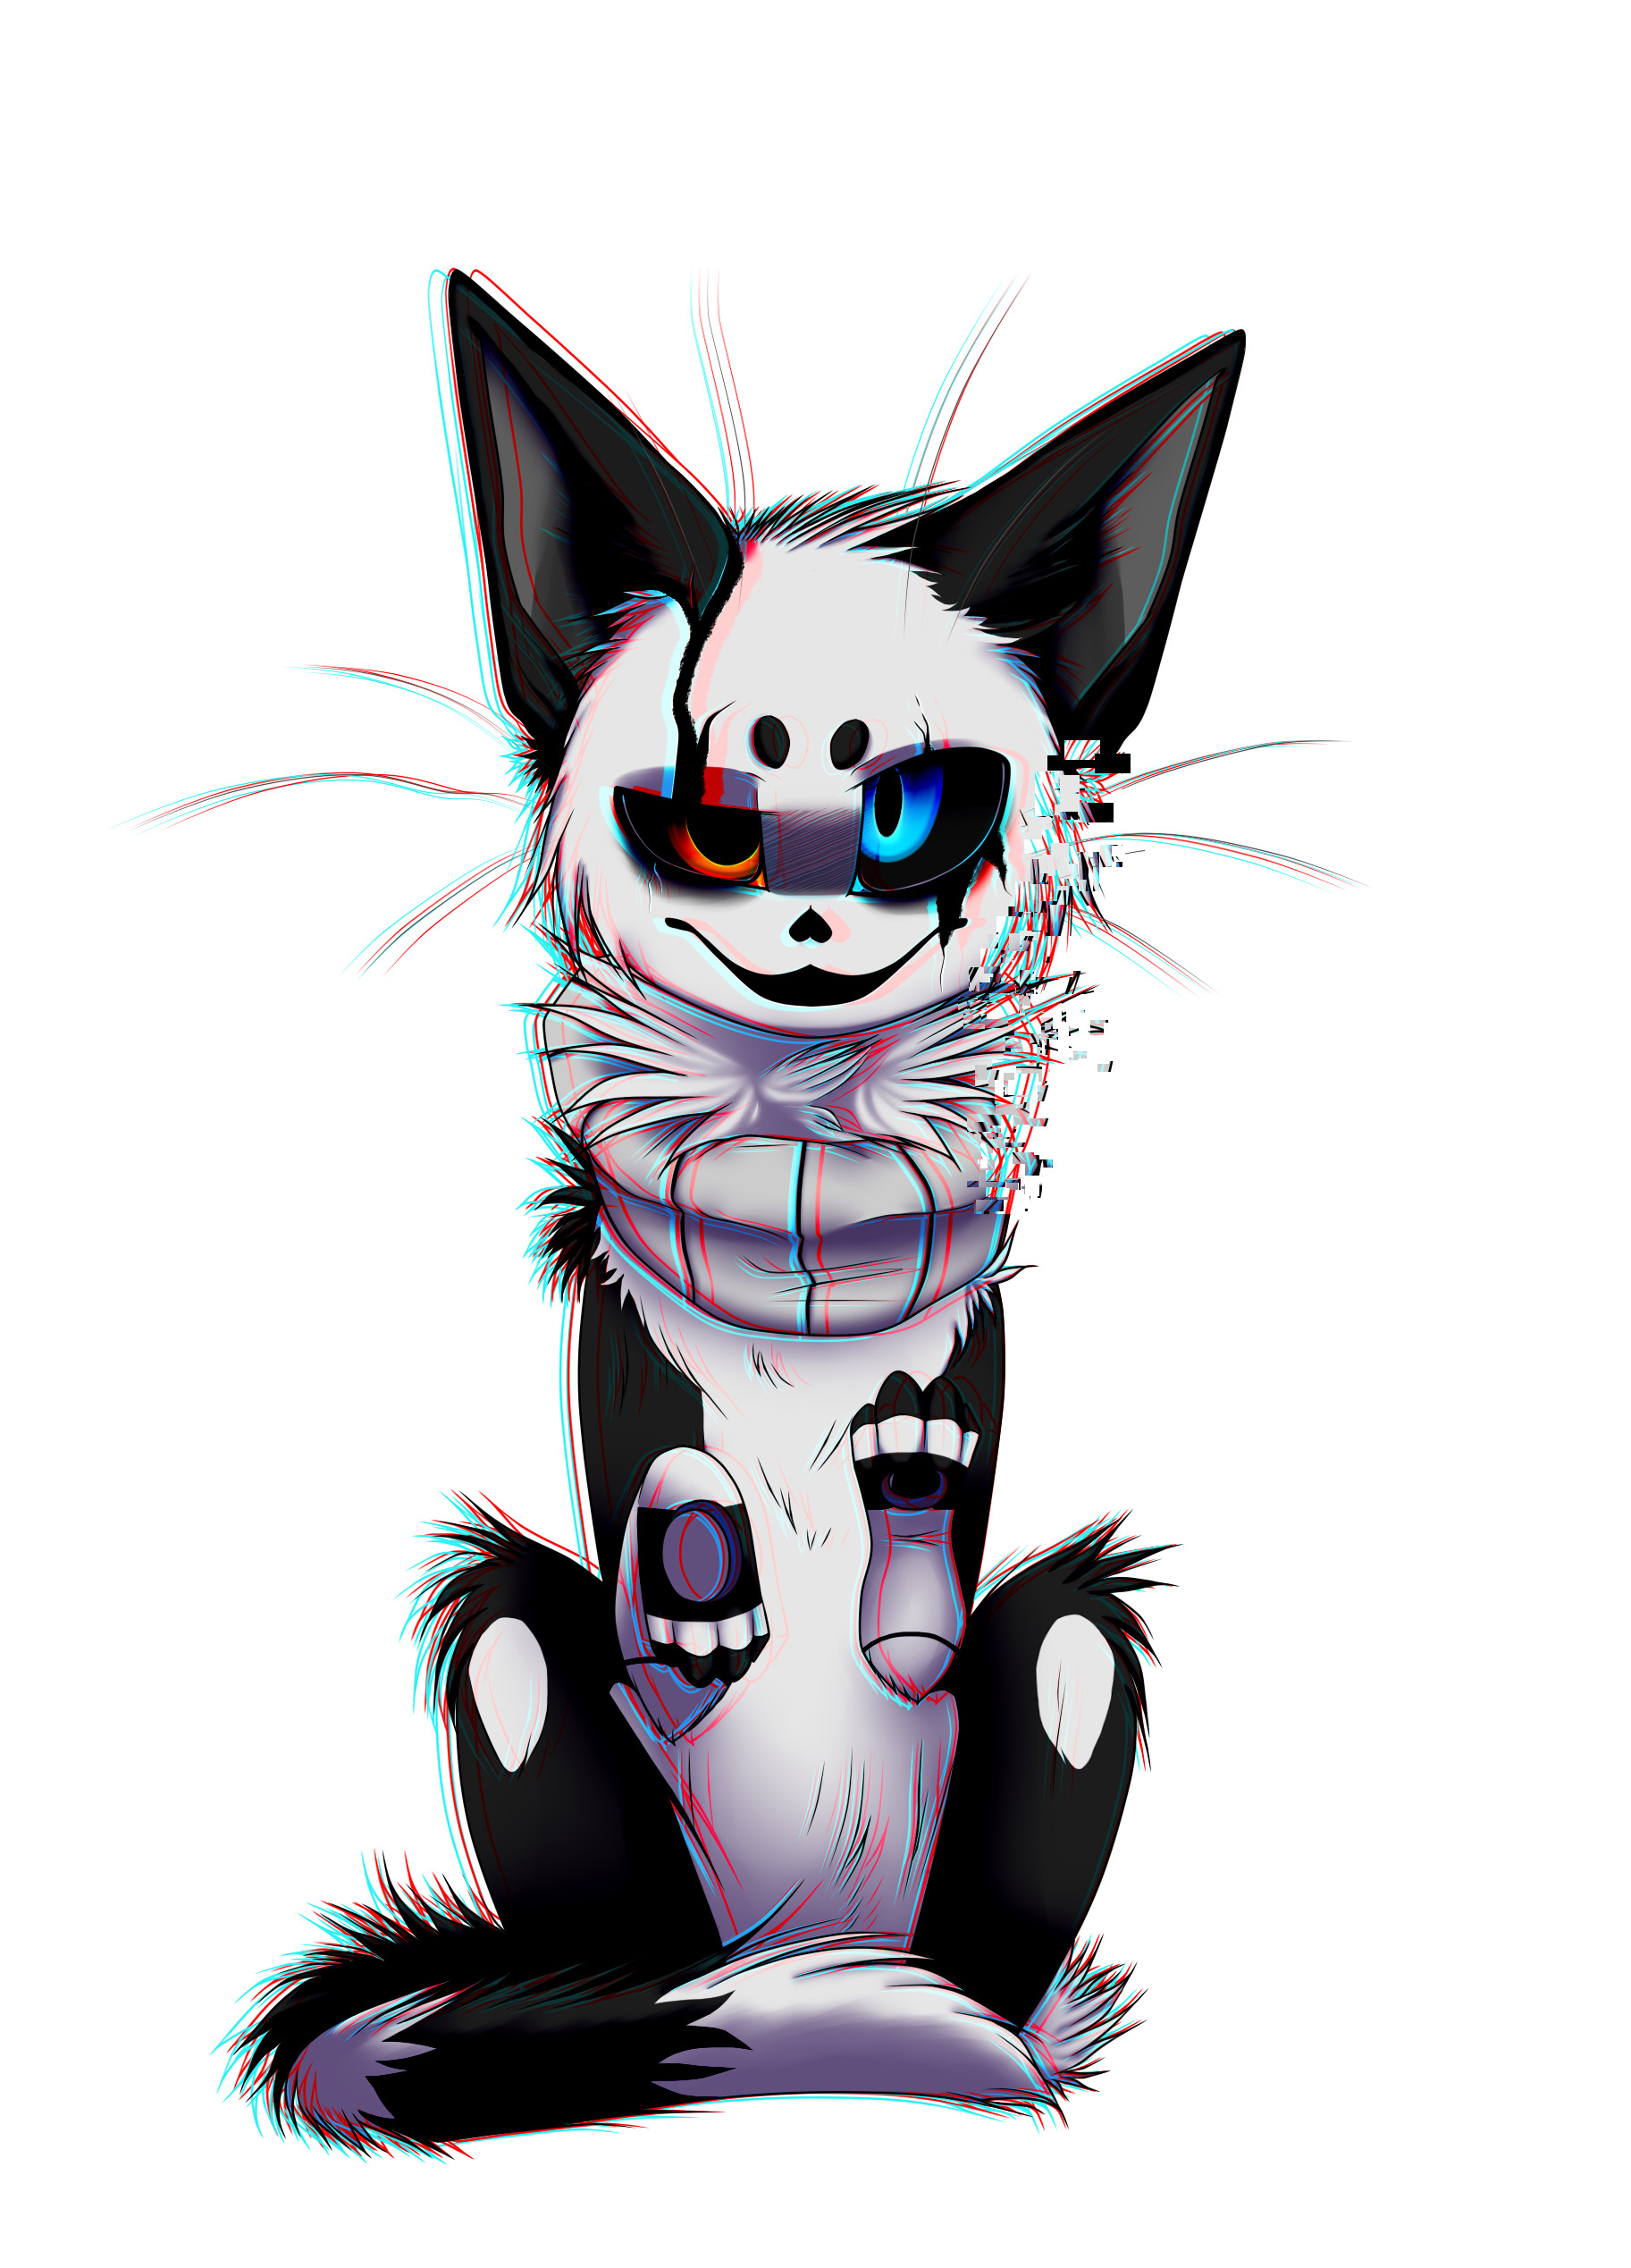 Gaster cat bug by yamiko-creepy W-D. Gaster cat bug by yamiko-creepy